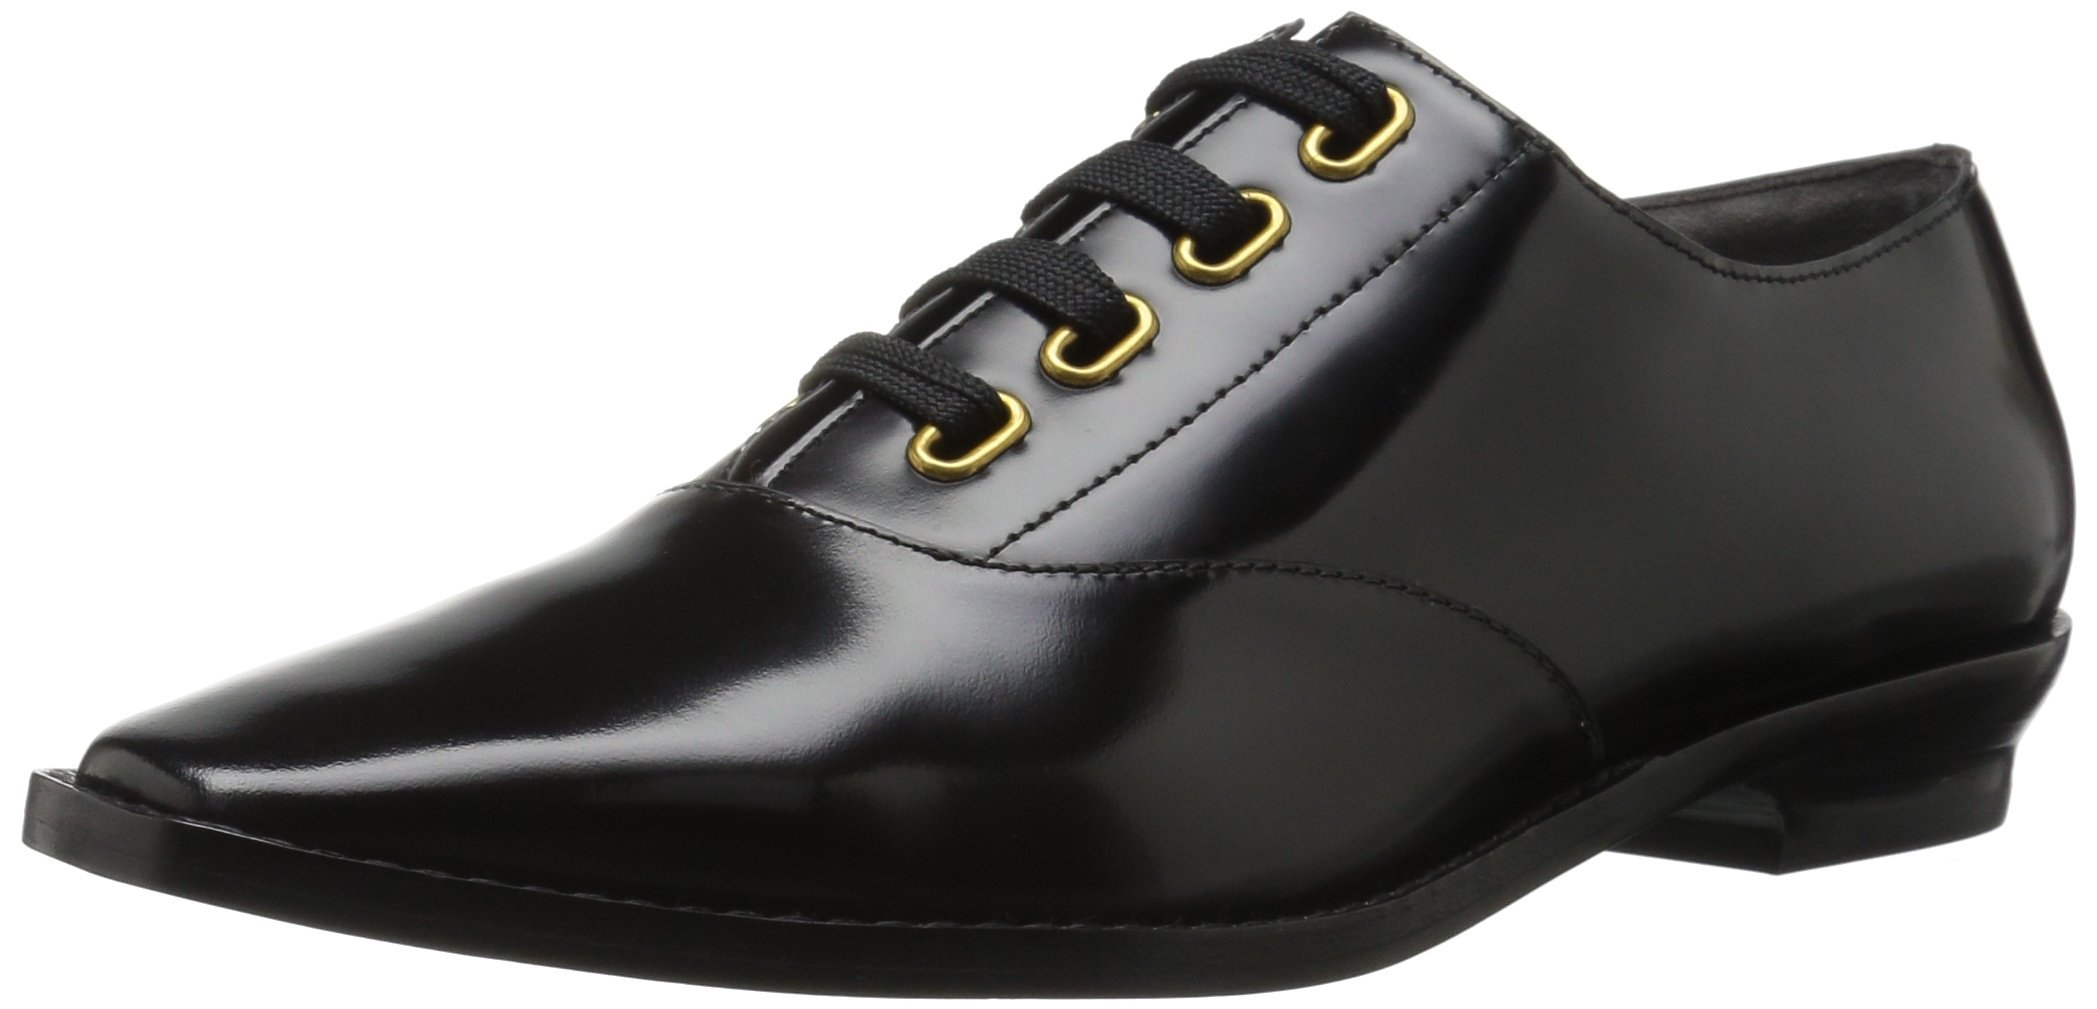 Marc Jacobs Women's Brittany Lace up Oxford, Black, 36 M EU (6 US) by Marc Jacobs (Image #1)